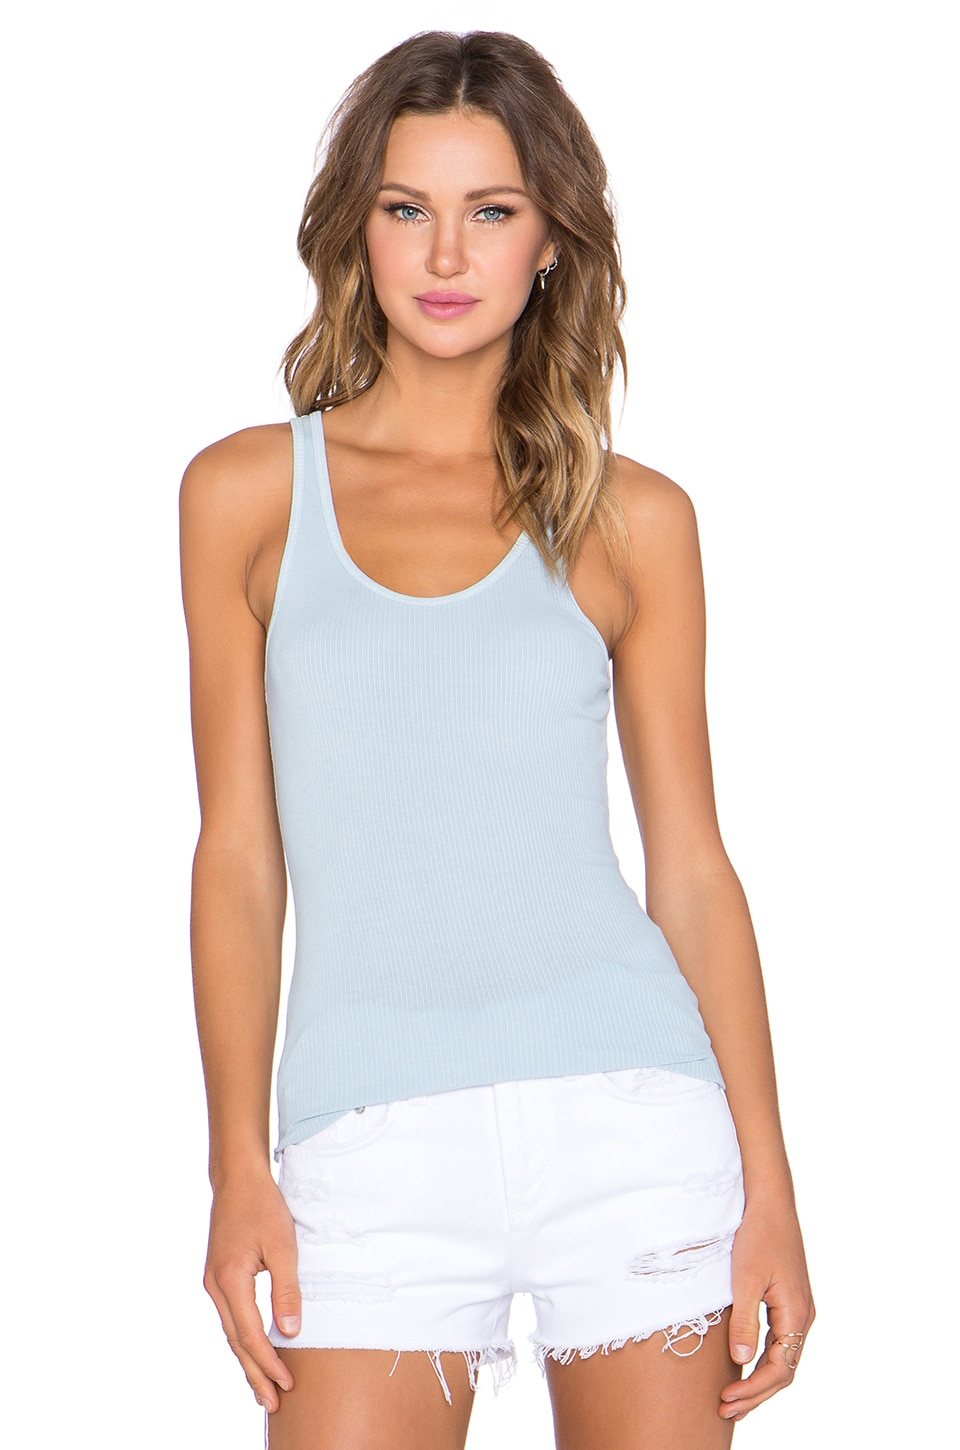 James Perse The Daily Racer Tank in Capri